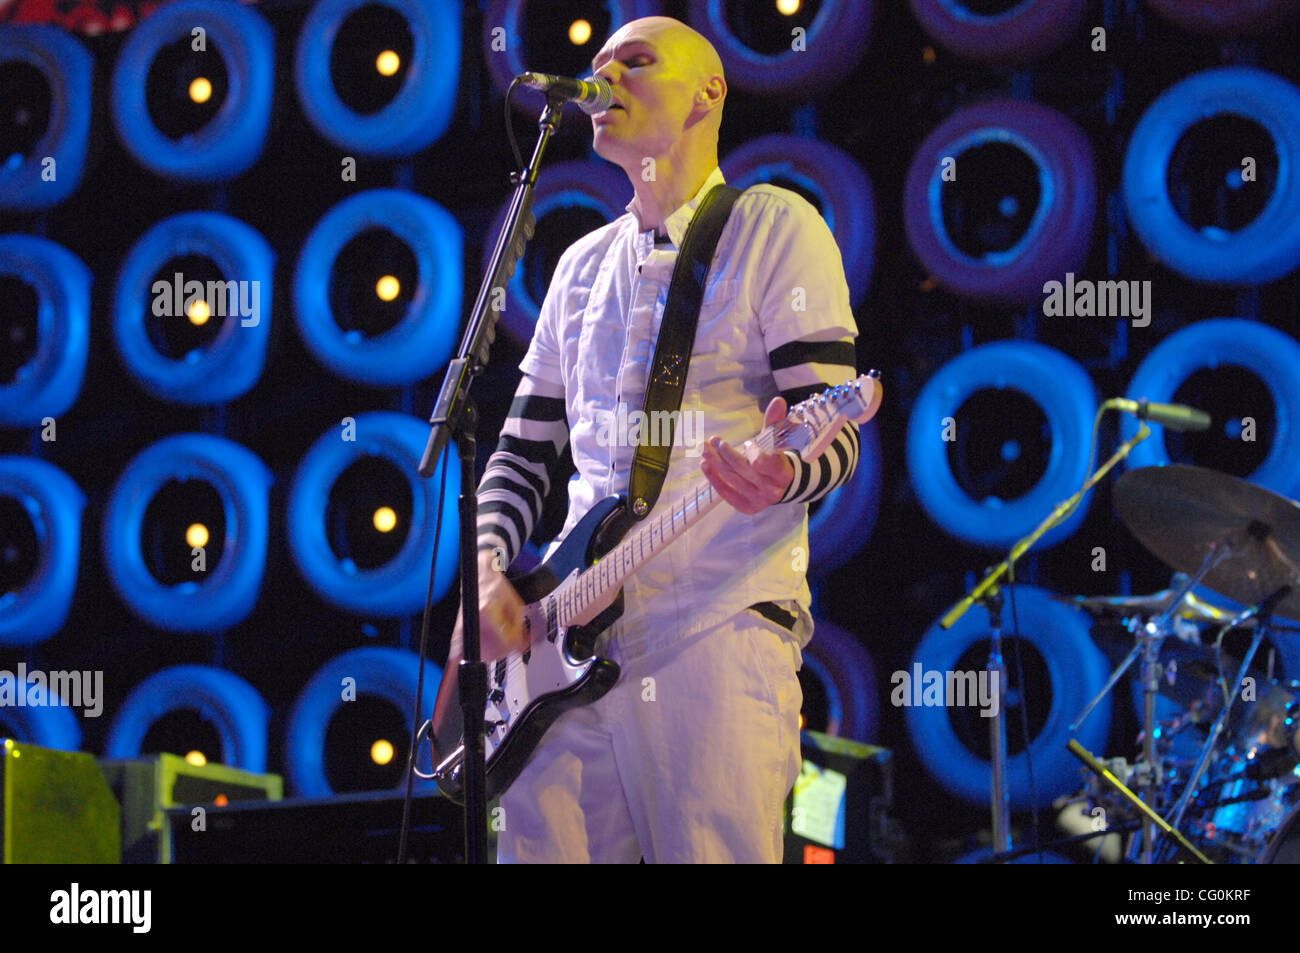 Jul. 7, 2007 East Rutherford, NJ; USA,  Musician BILLY CORGAN of the band THE SMASHING PUMPKINS performs live at - Stock Image